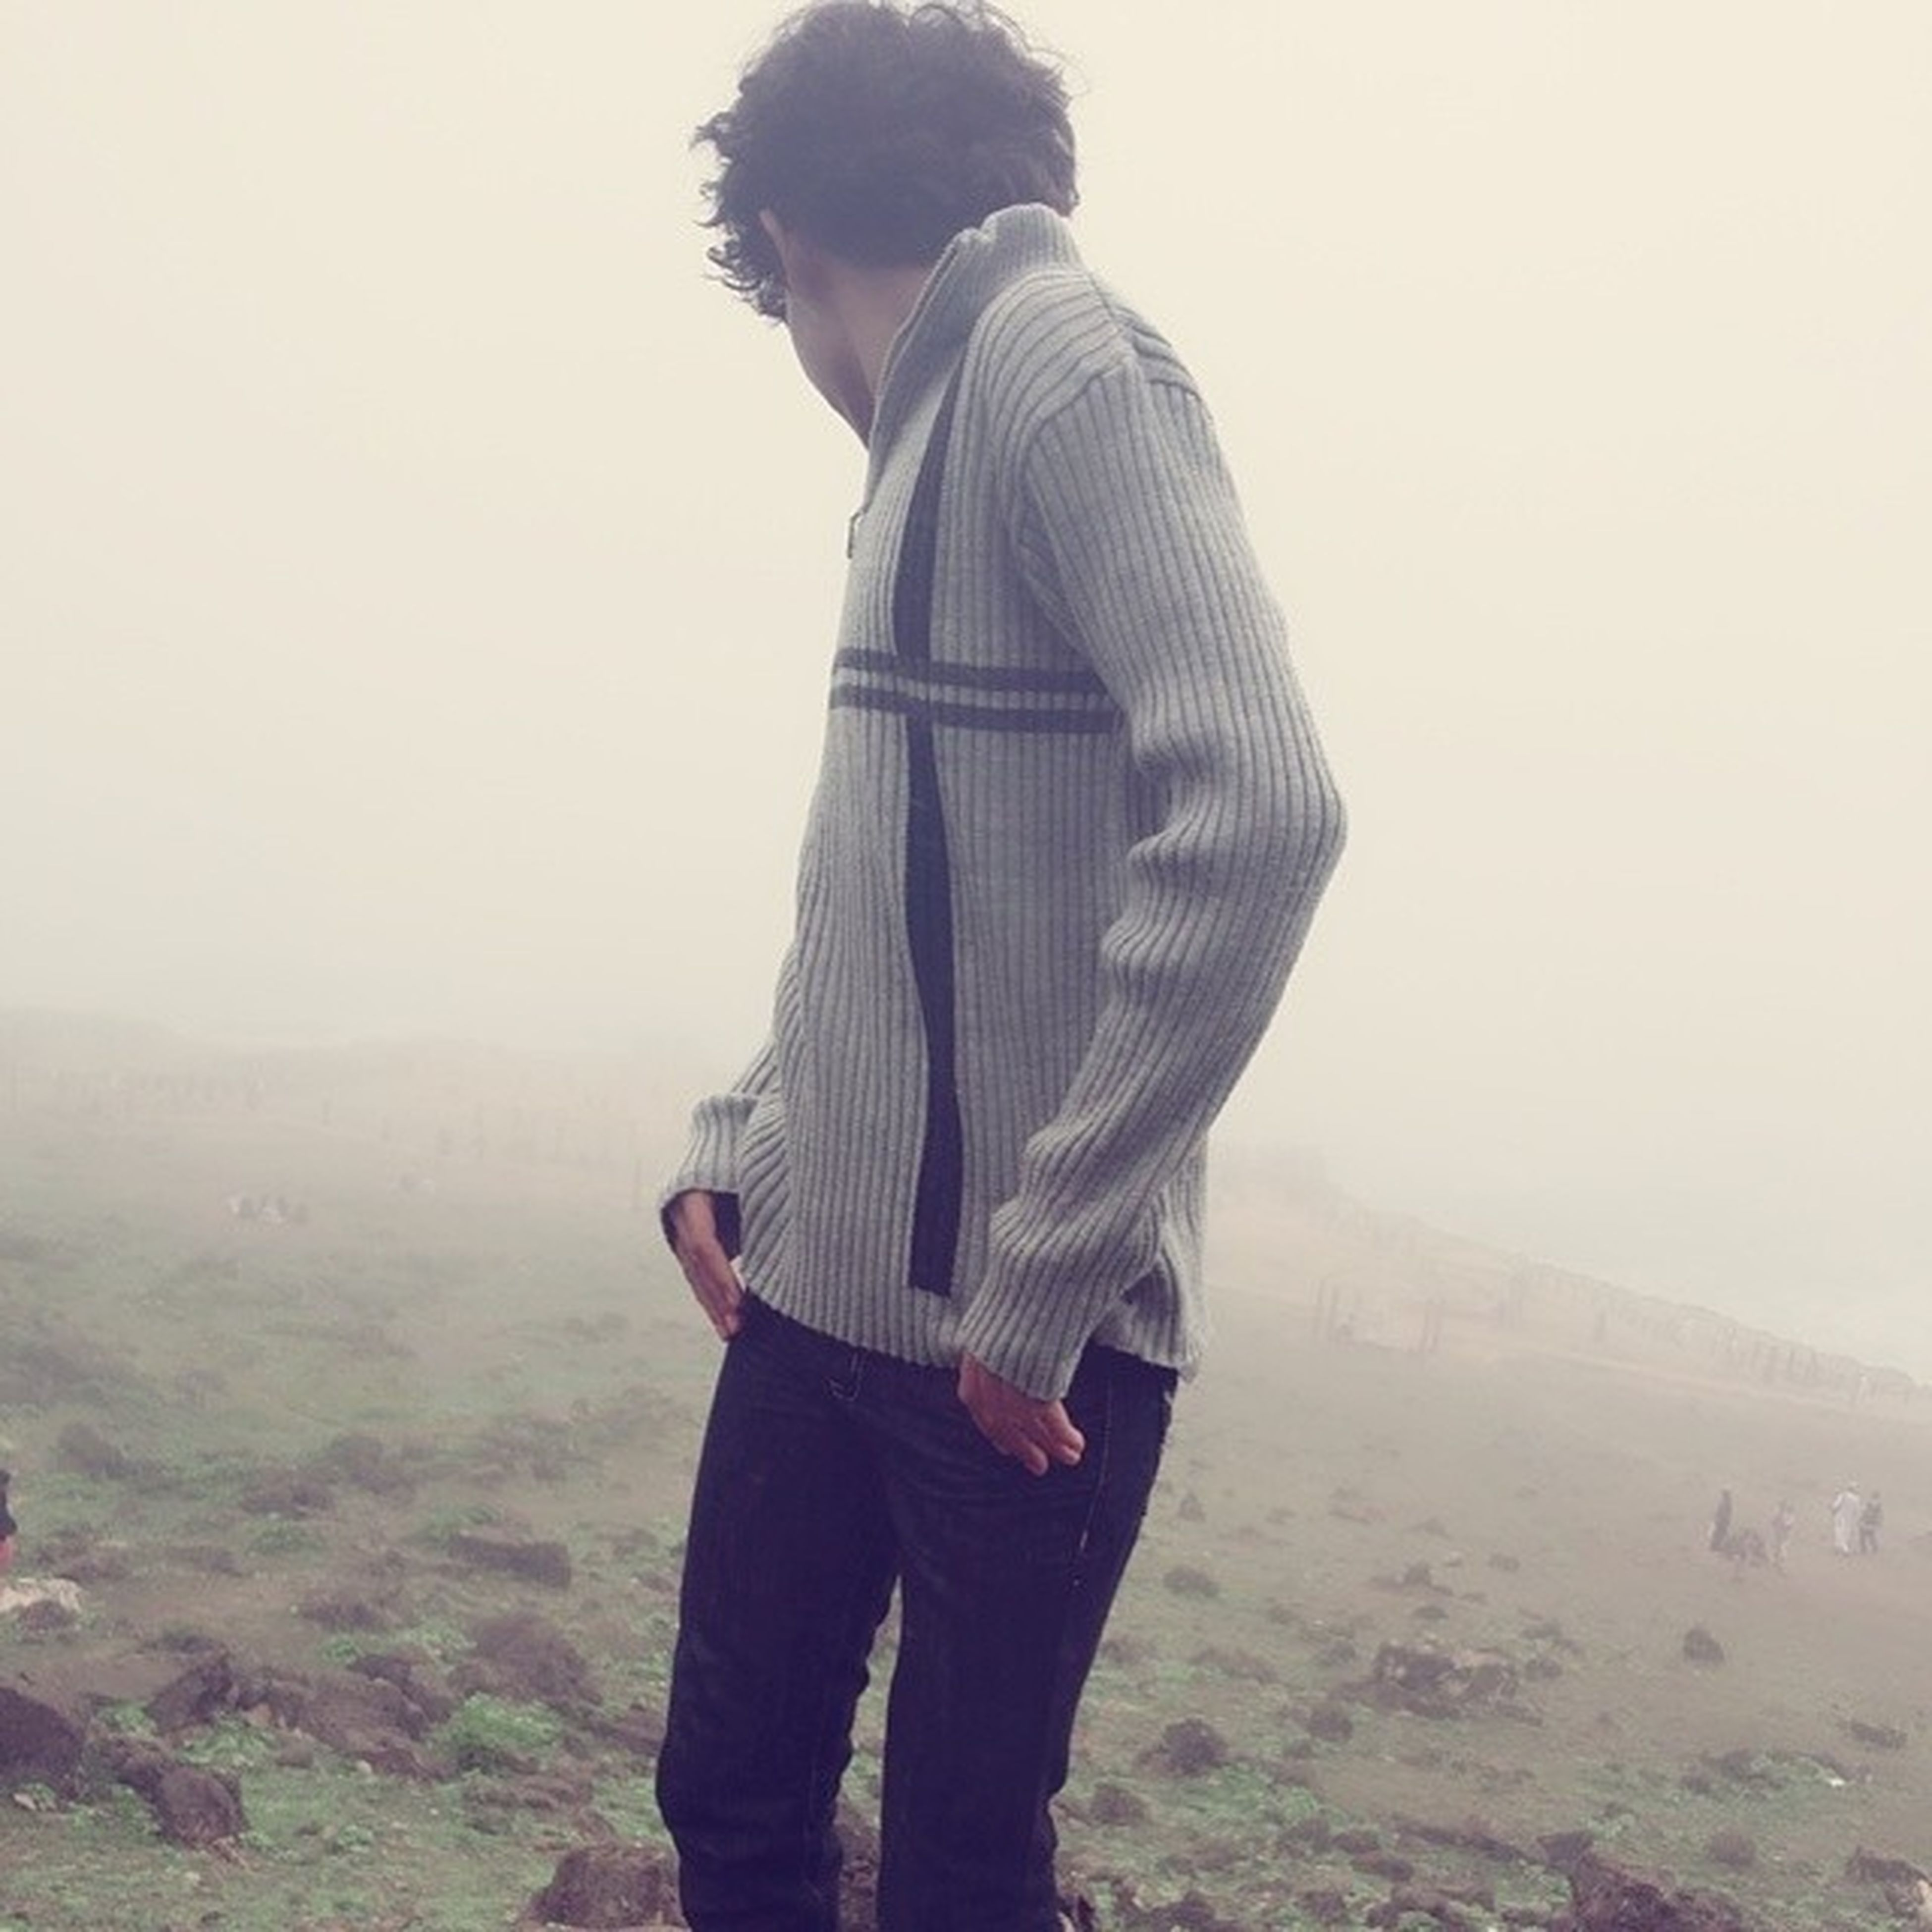 lifestyles, standing, casual clothing, leisure activity, three quarter length, rear view, fog, waist up, copy space, warm clothing, young adult, tranquility, landscape, person, tranquil scene, full length, weather